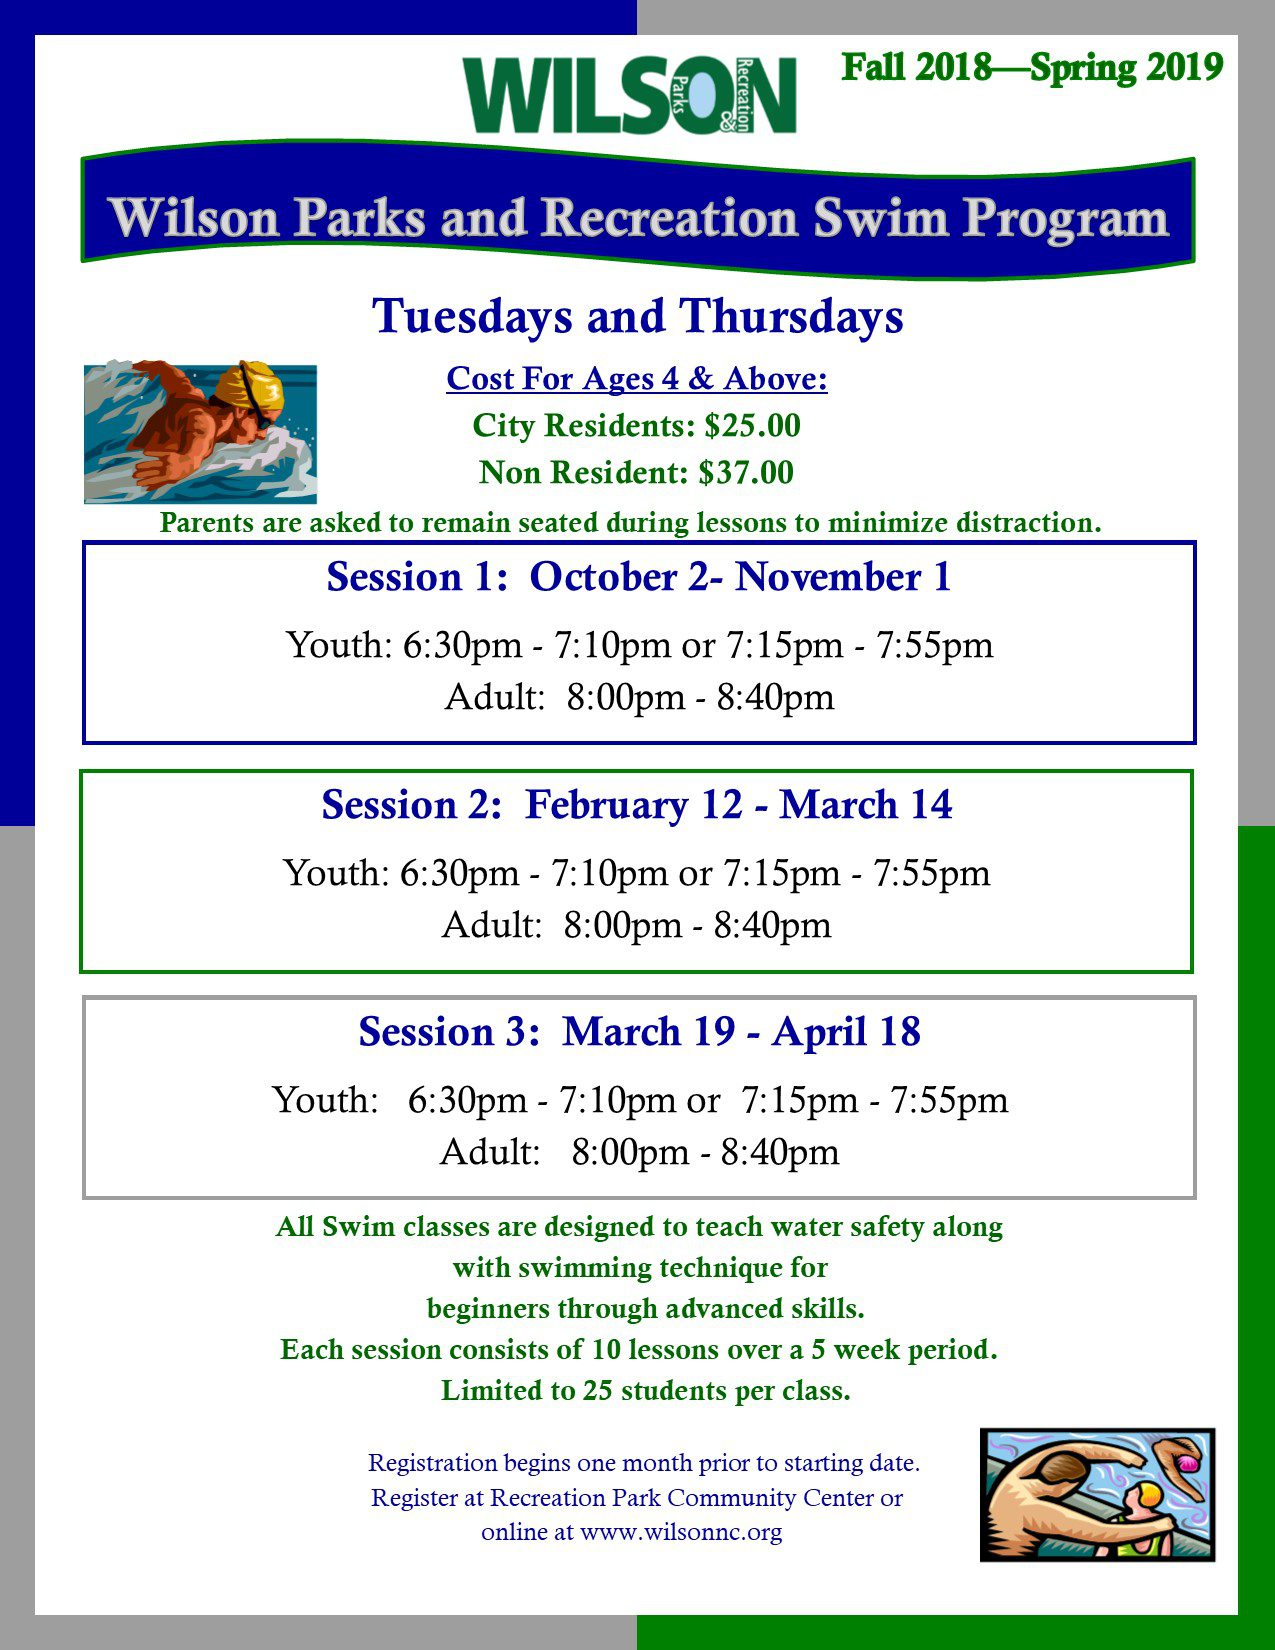 Swim-Lessons-Flyer-F-S-2018-2019-Col@2x